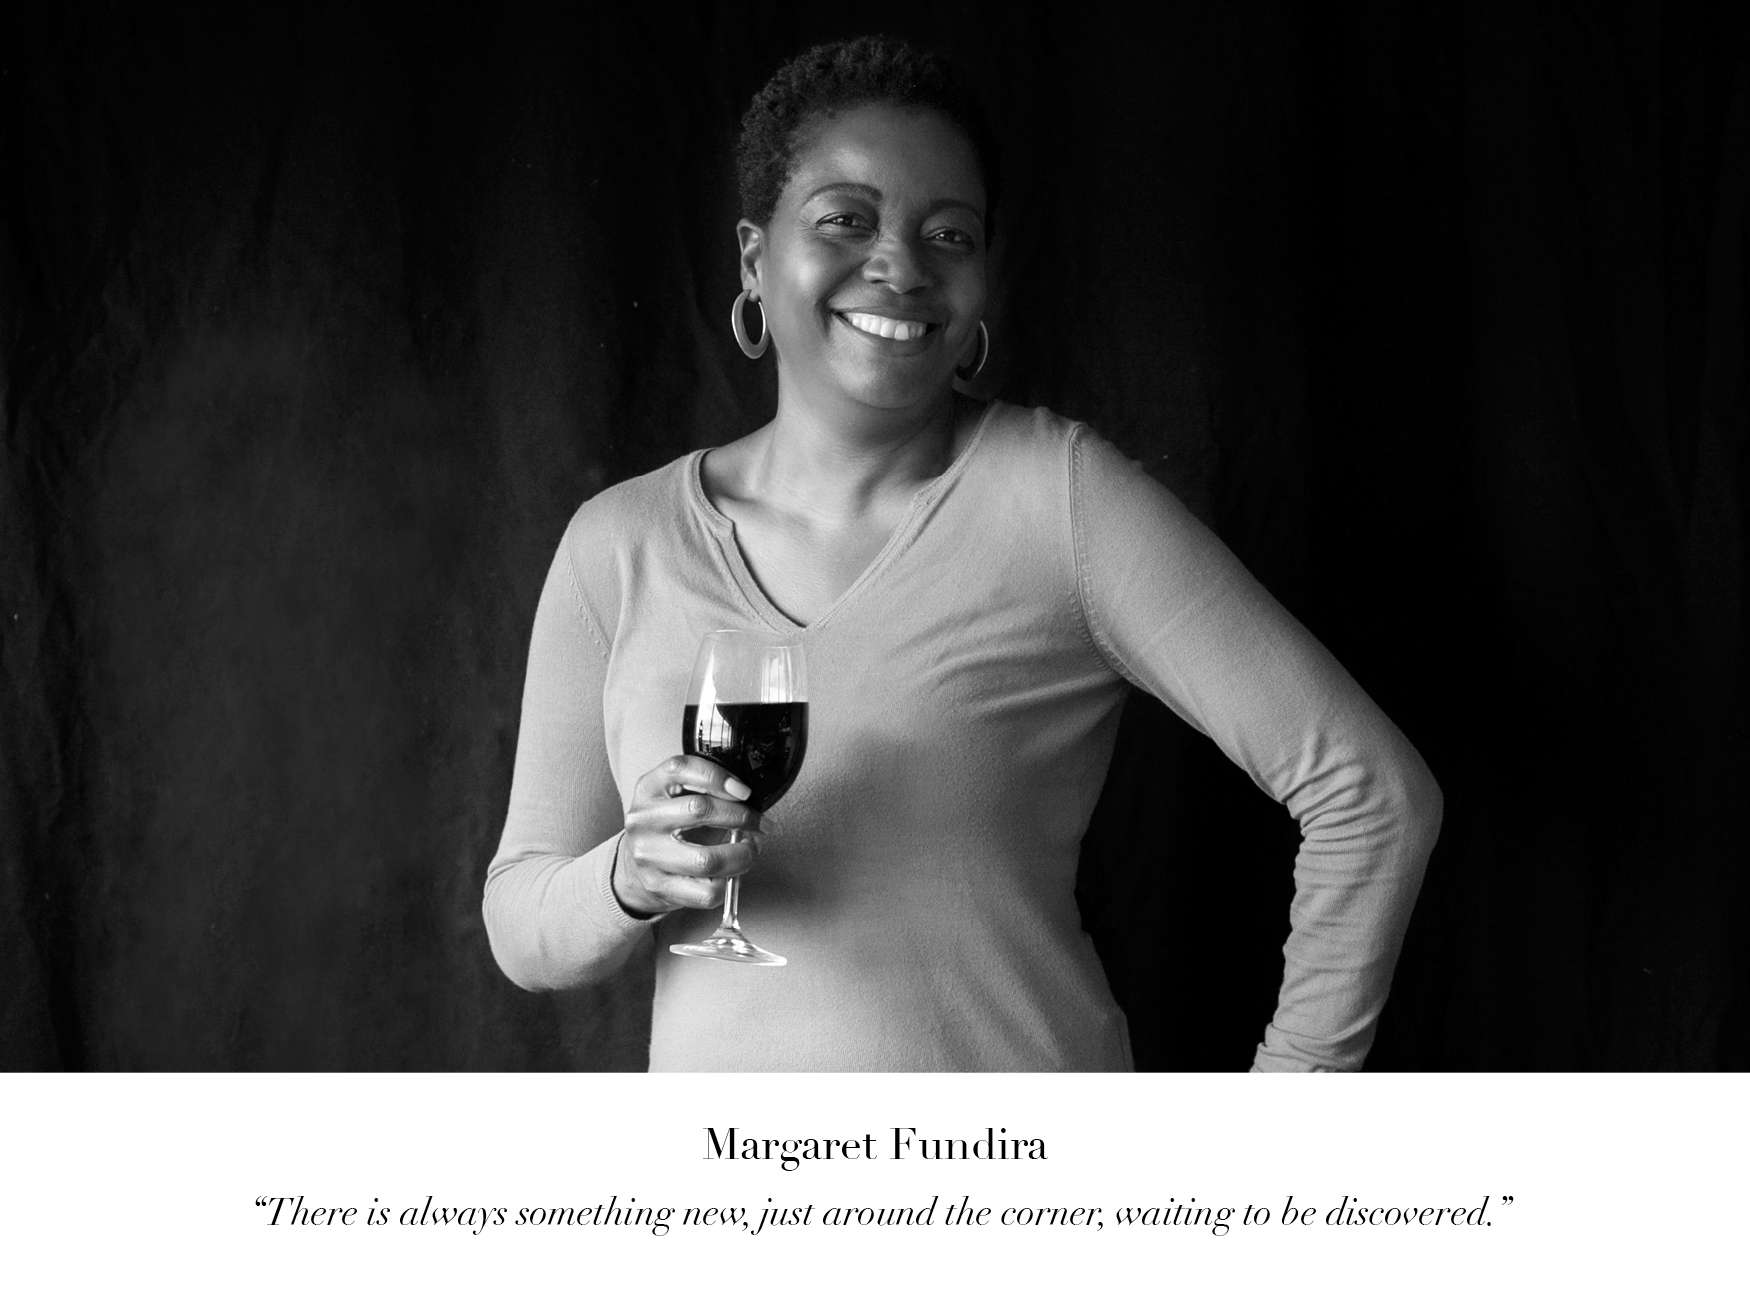 Margaret Fundira Wine of the Month Club wine judge